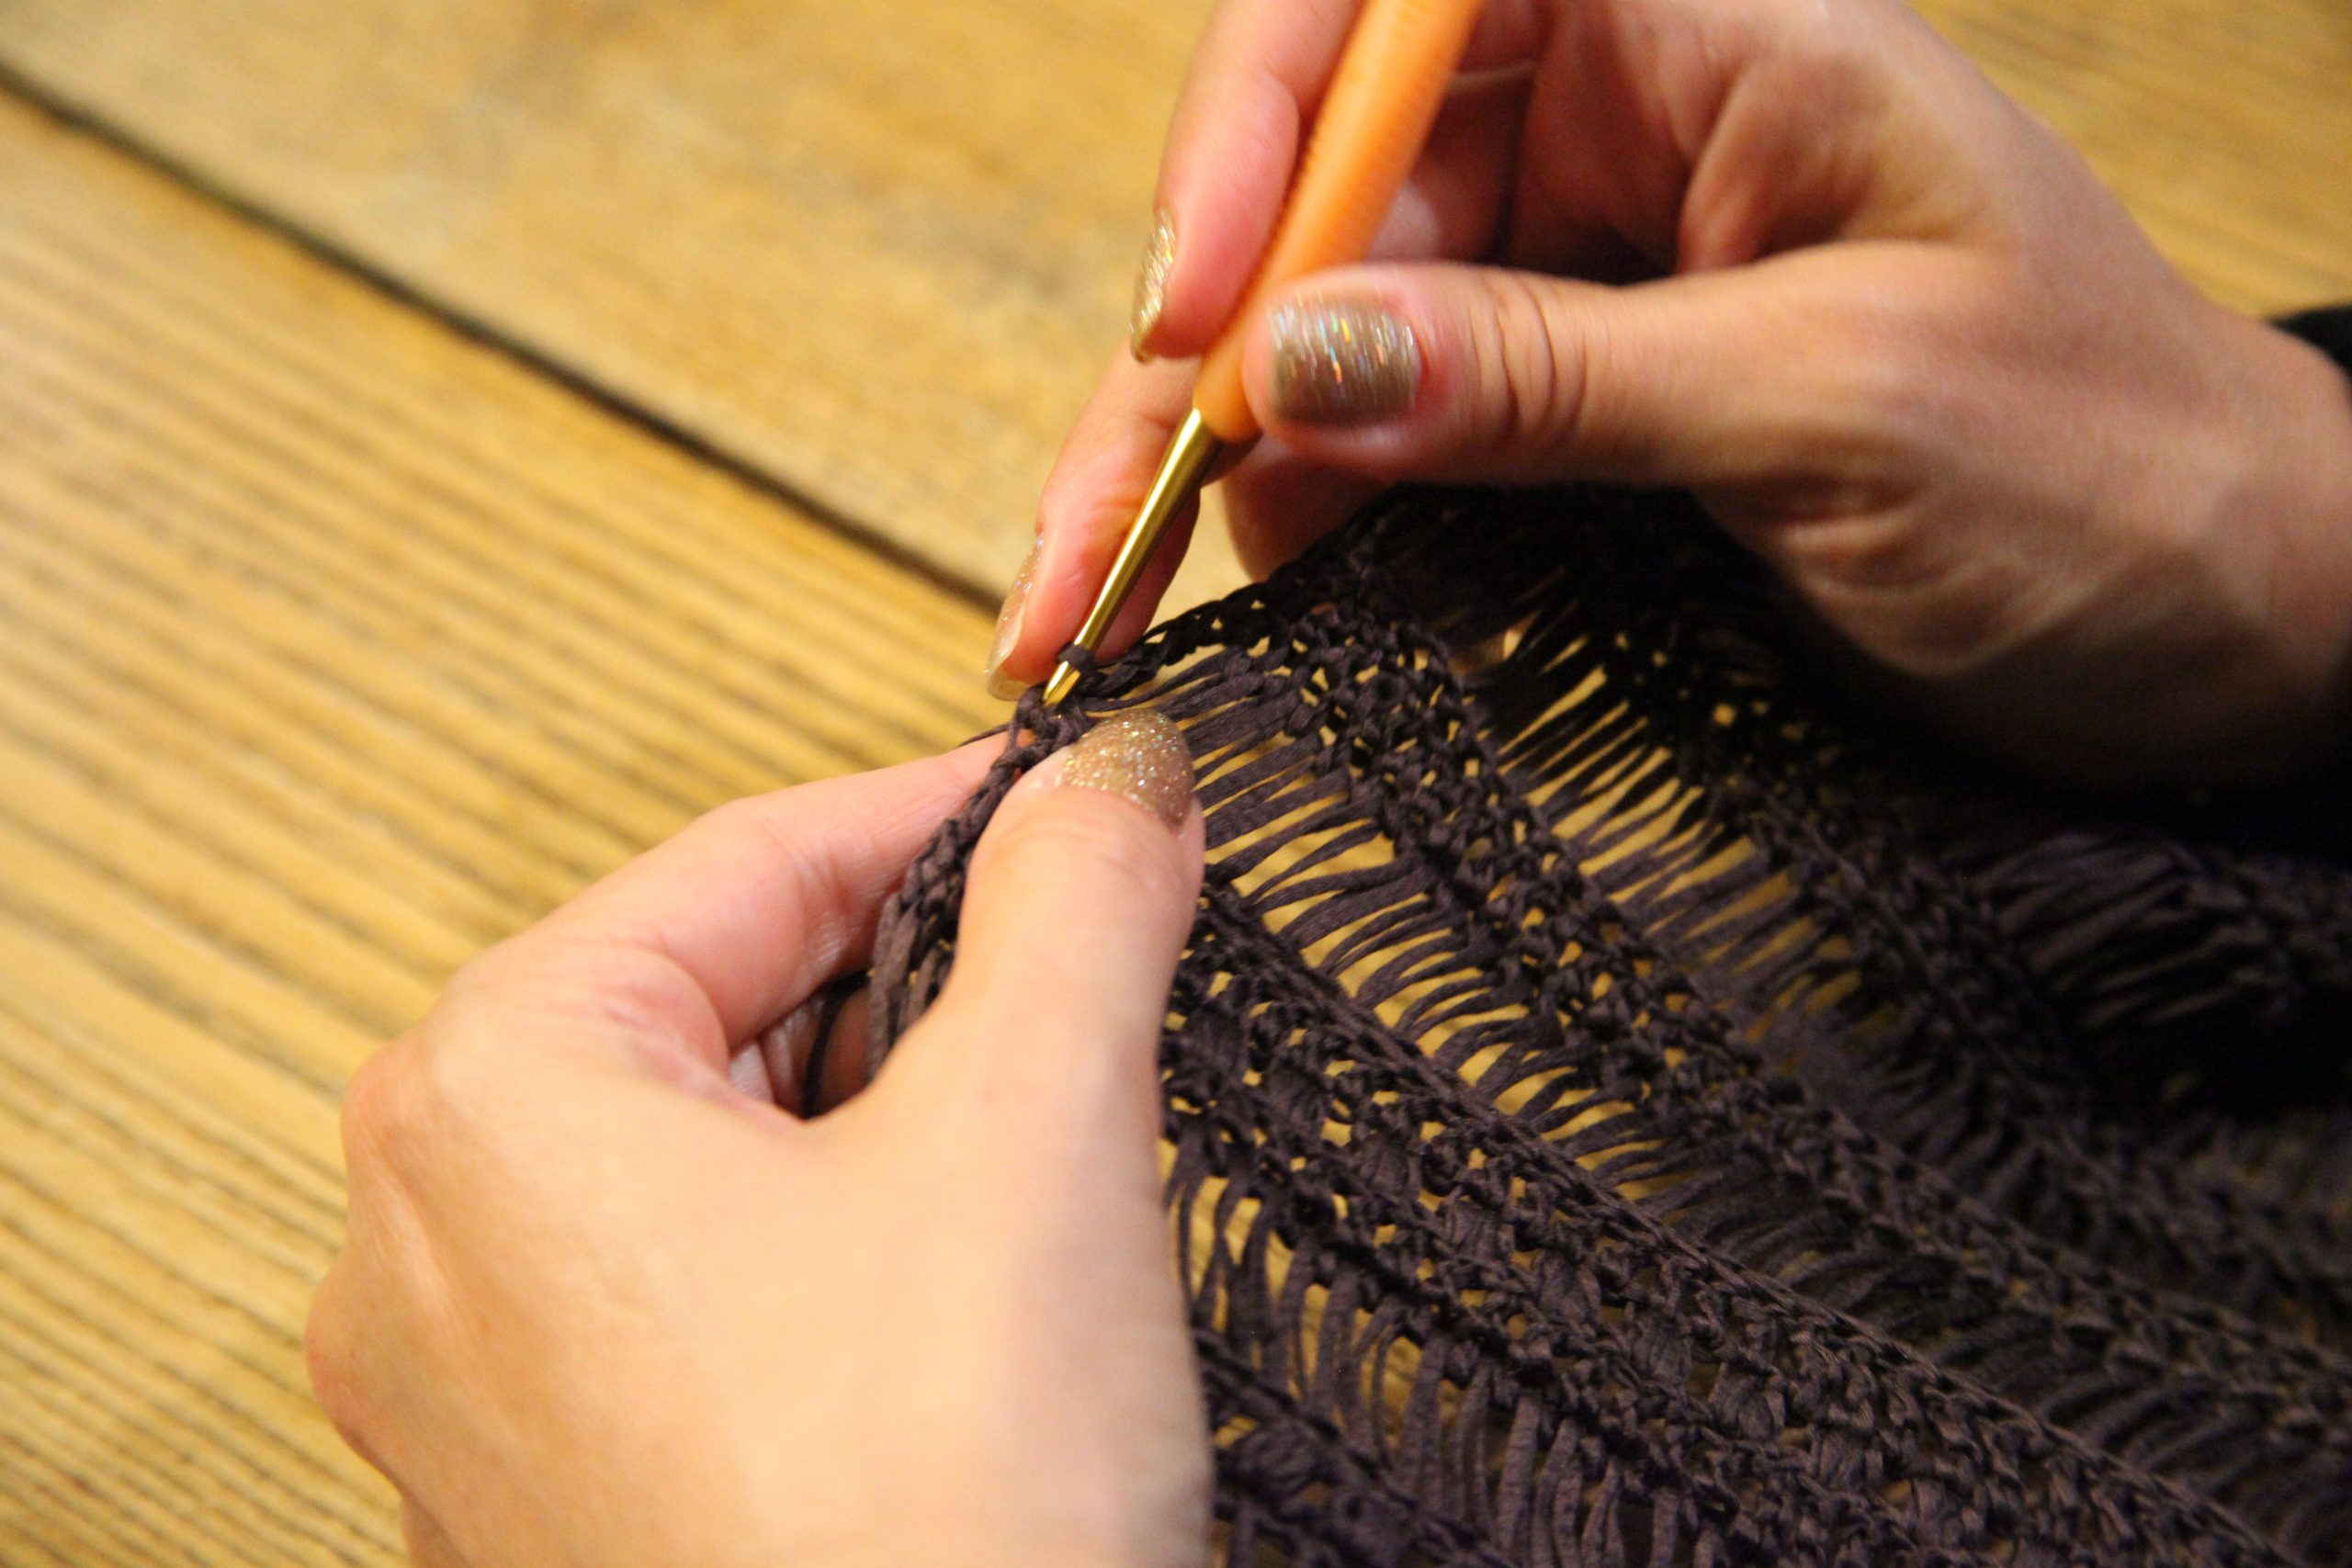 Broomstick lace project